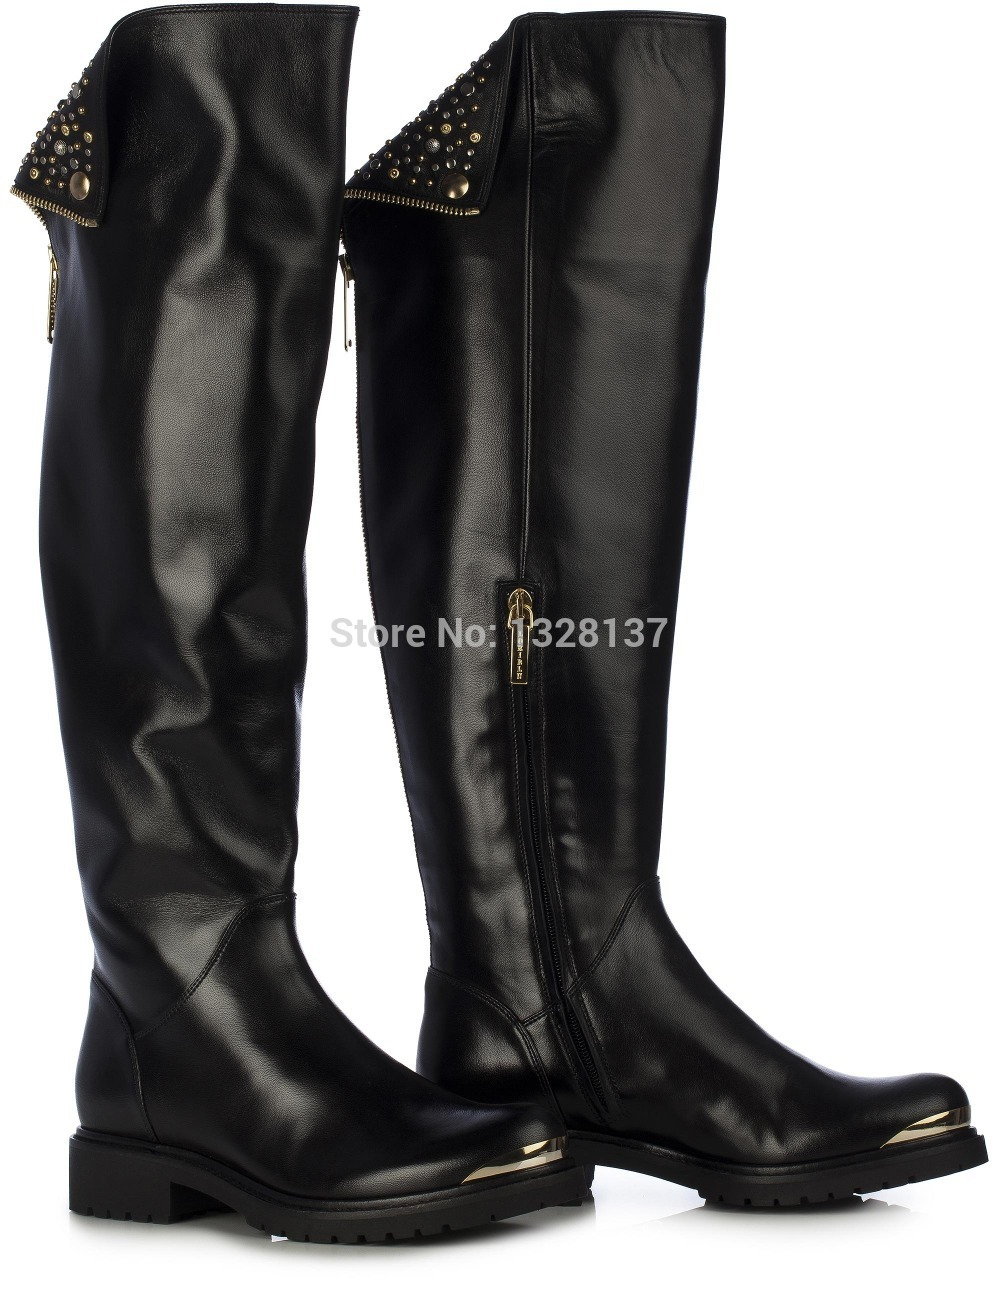 Cheap Black Cowboy Boots Promotion-Shop for Promotional Cheap ...